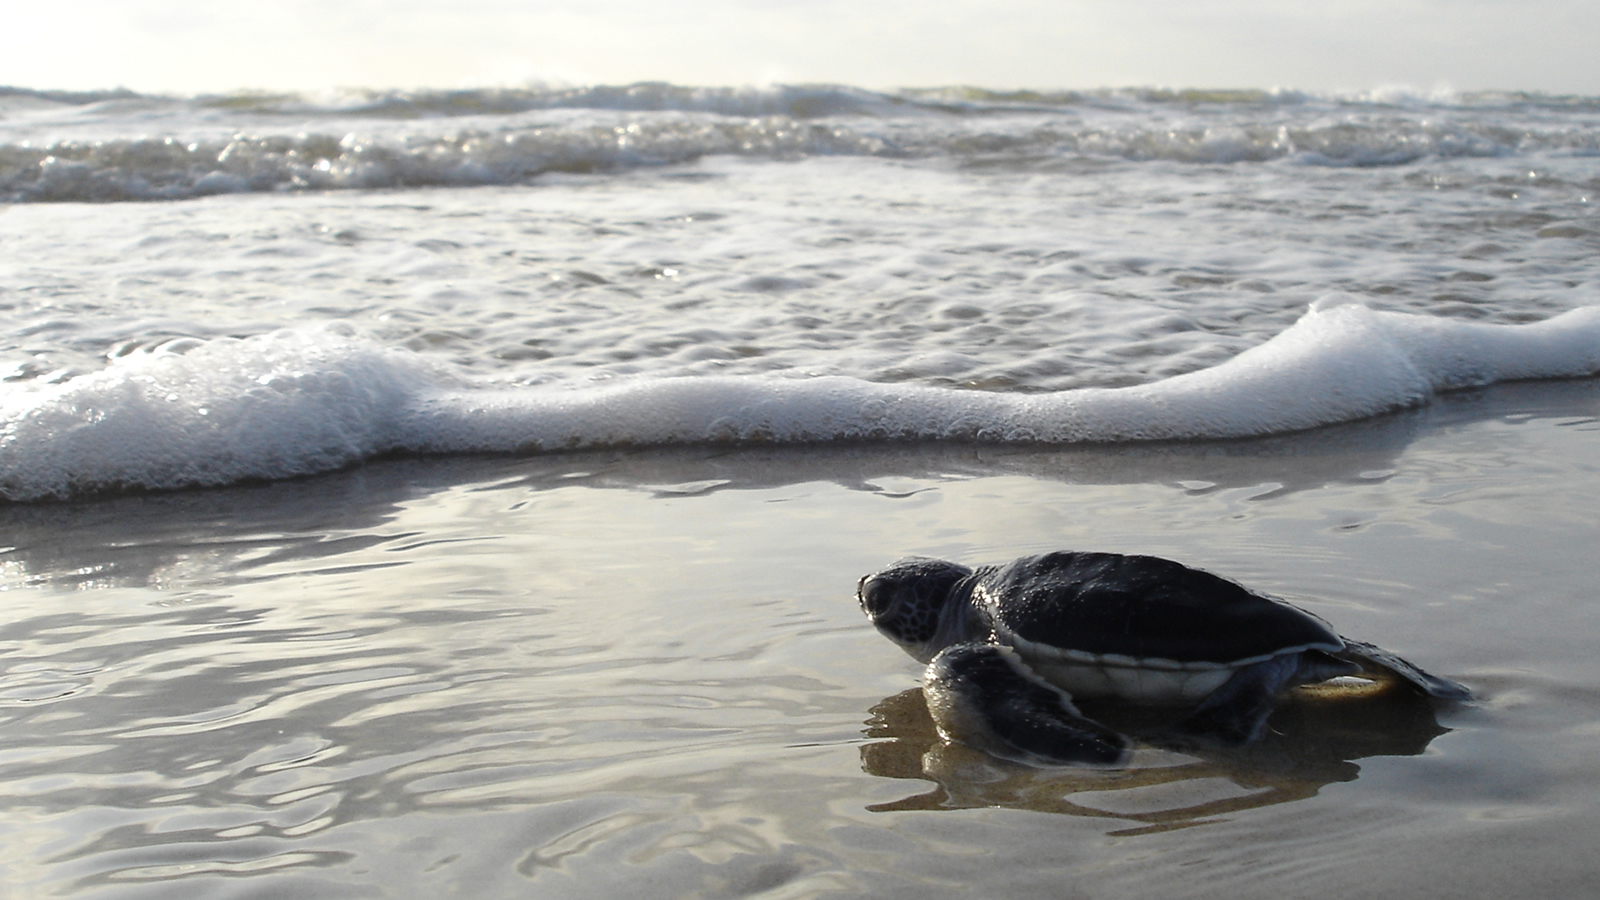 <h4>OUR OCEANS</h4><h5>Goal: We must protect our oceans and marine life by stopping offshore drilling and supporting marine protected areas.</h5><em>NPS Photo</em>